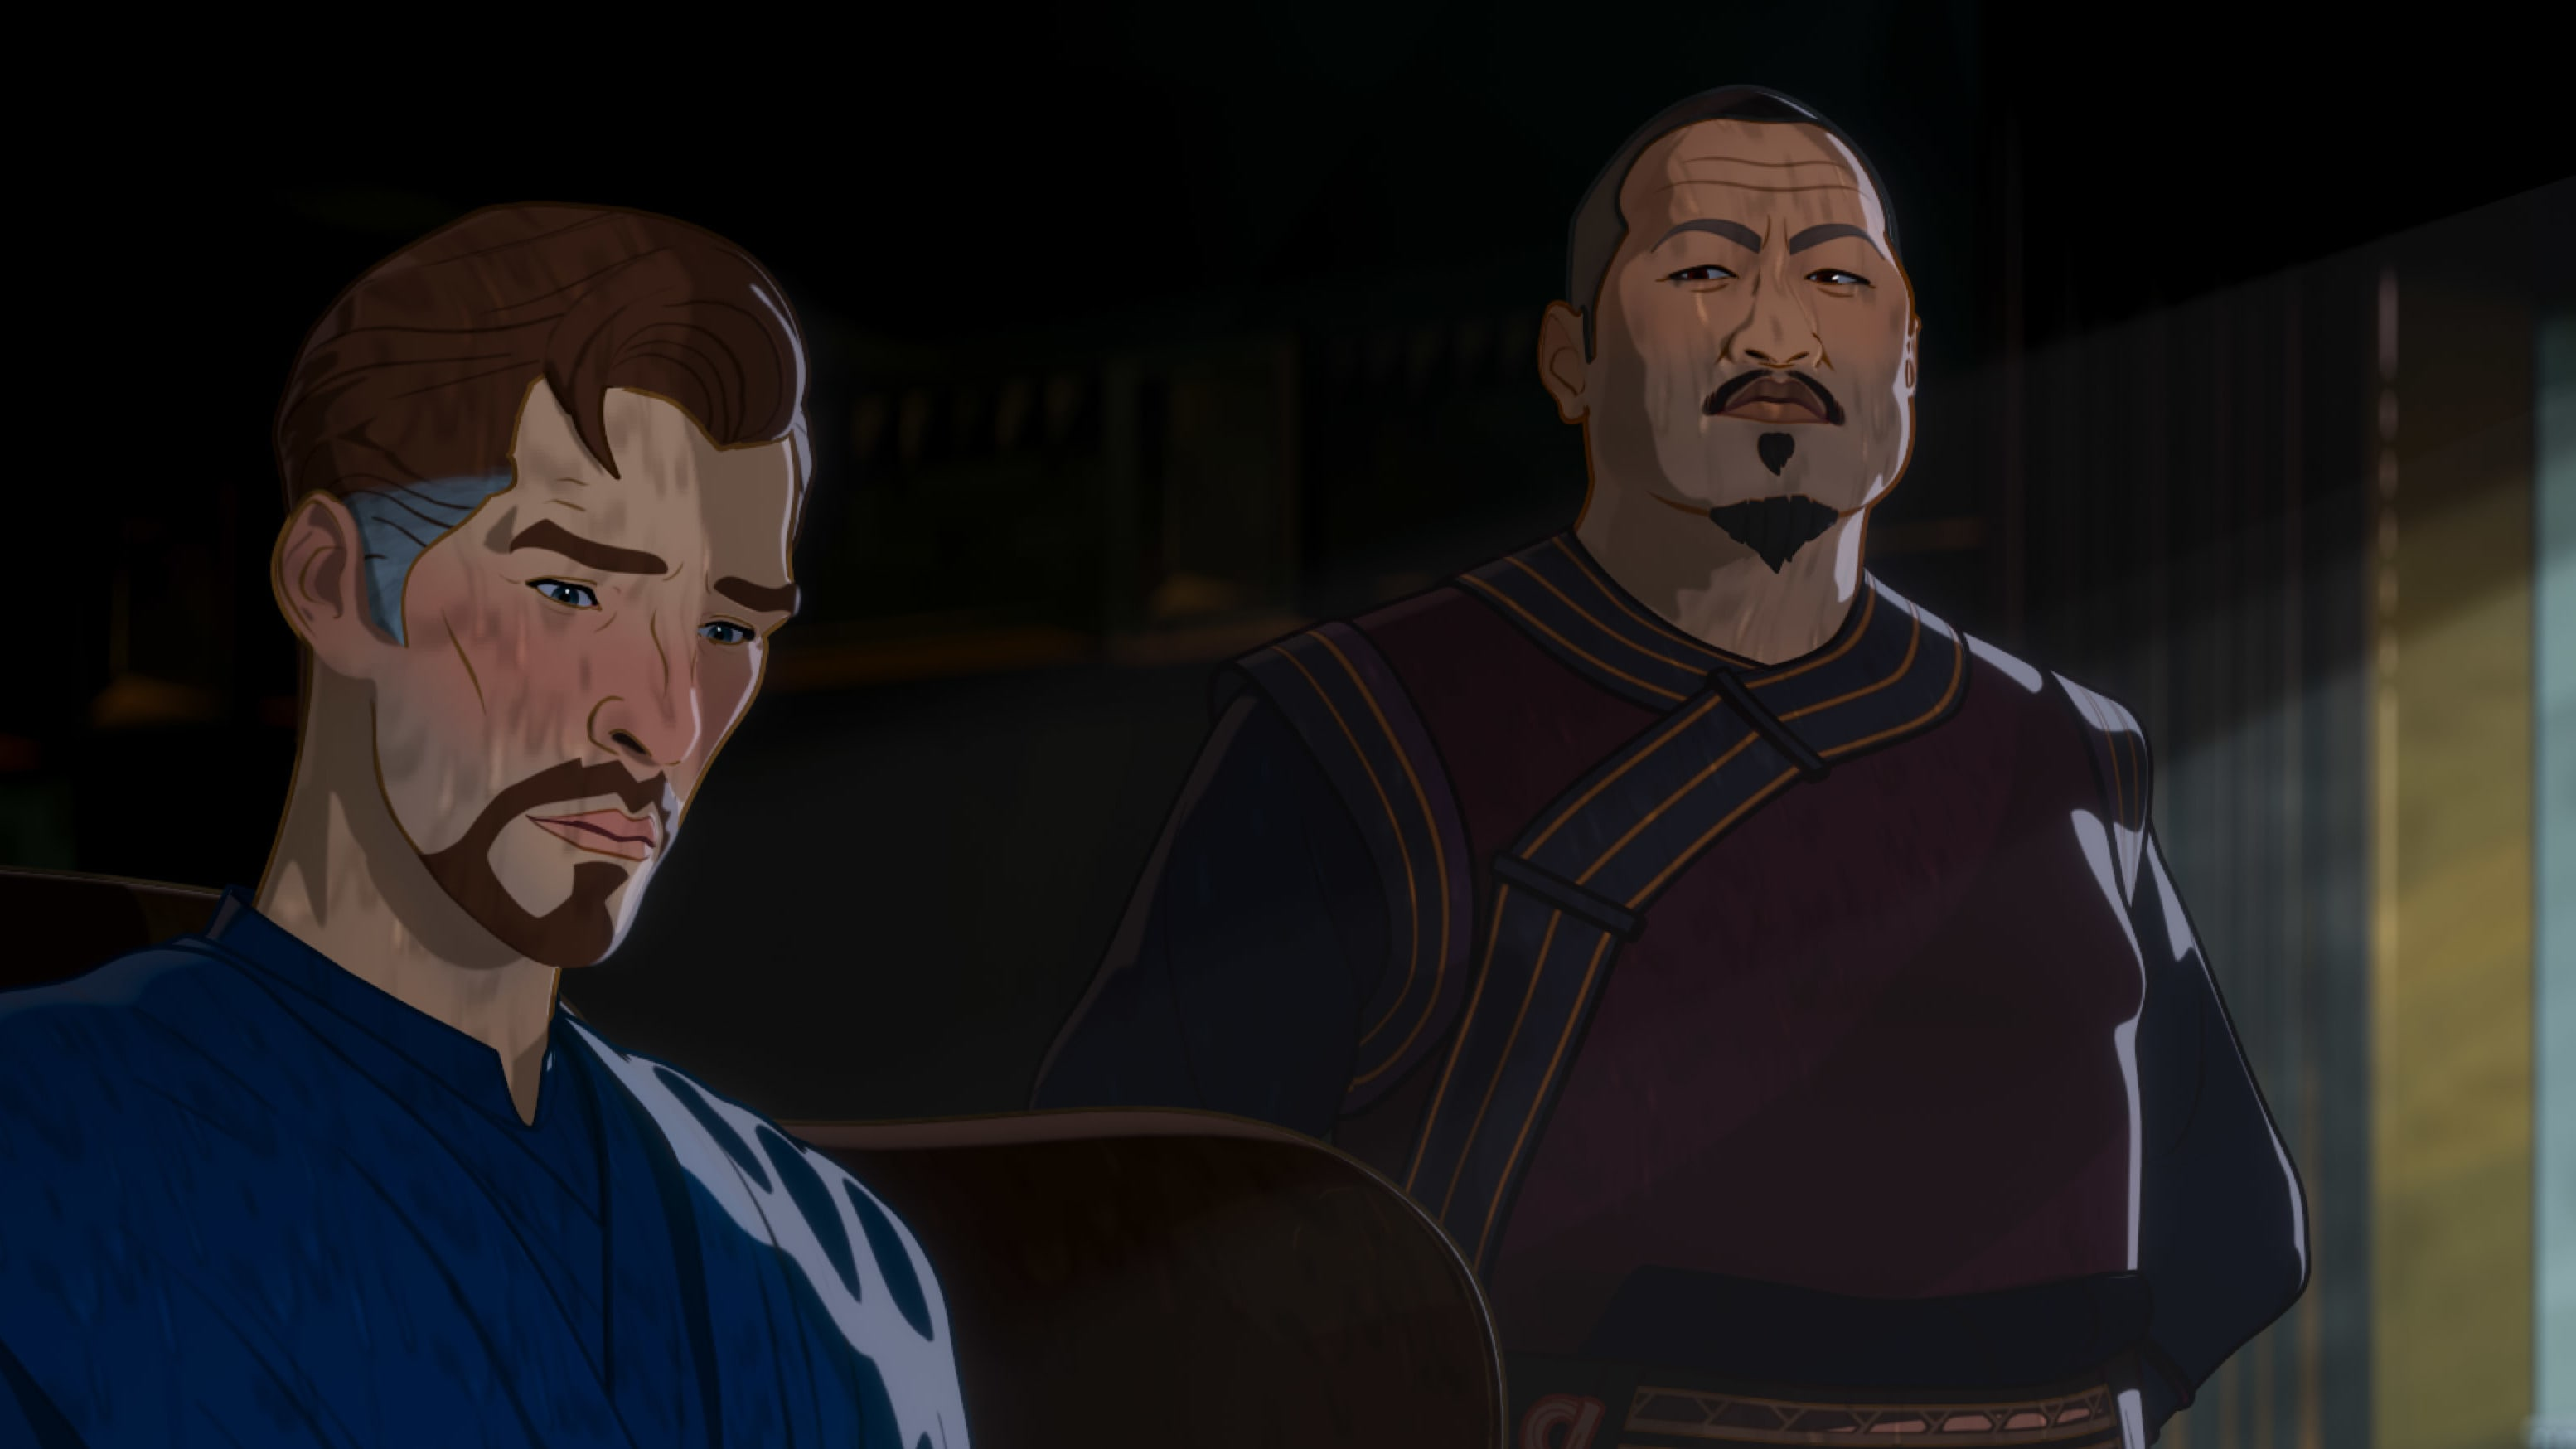 (L-R): Doctor Strange and Wong in Marvel Studios' WHAT IF…? exclusively on Disney+. ©Marvel Studios 2021. All Rights Reserved.